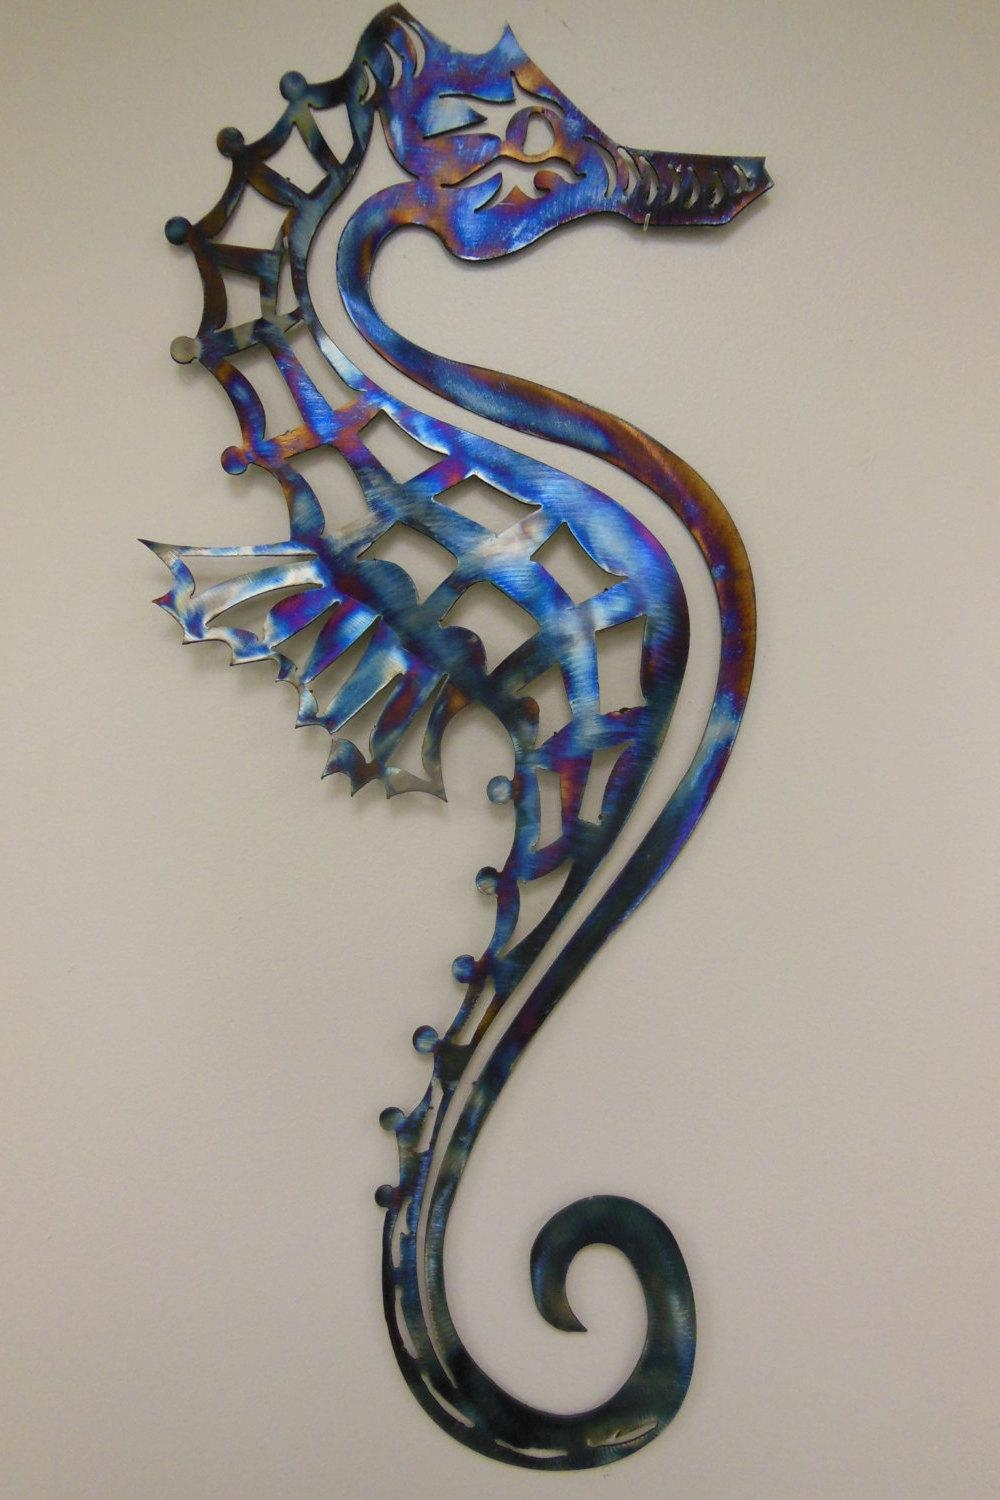 Seahorse Metal Art Wall Sculpture In Aluminum Or Stainless Throughout Sea Horse Wall Art (Image 10 of 20)